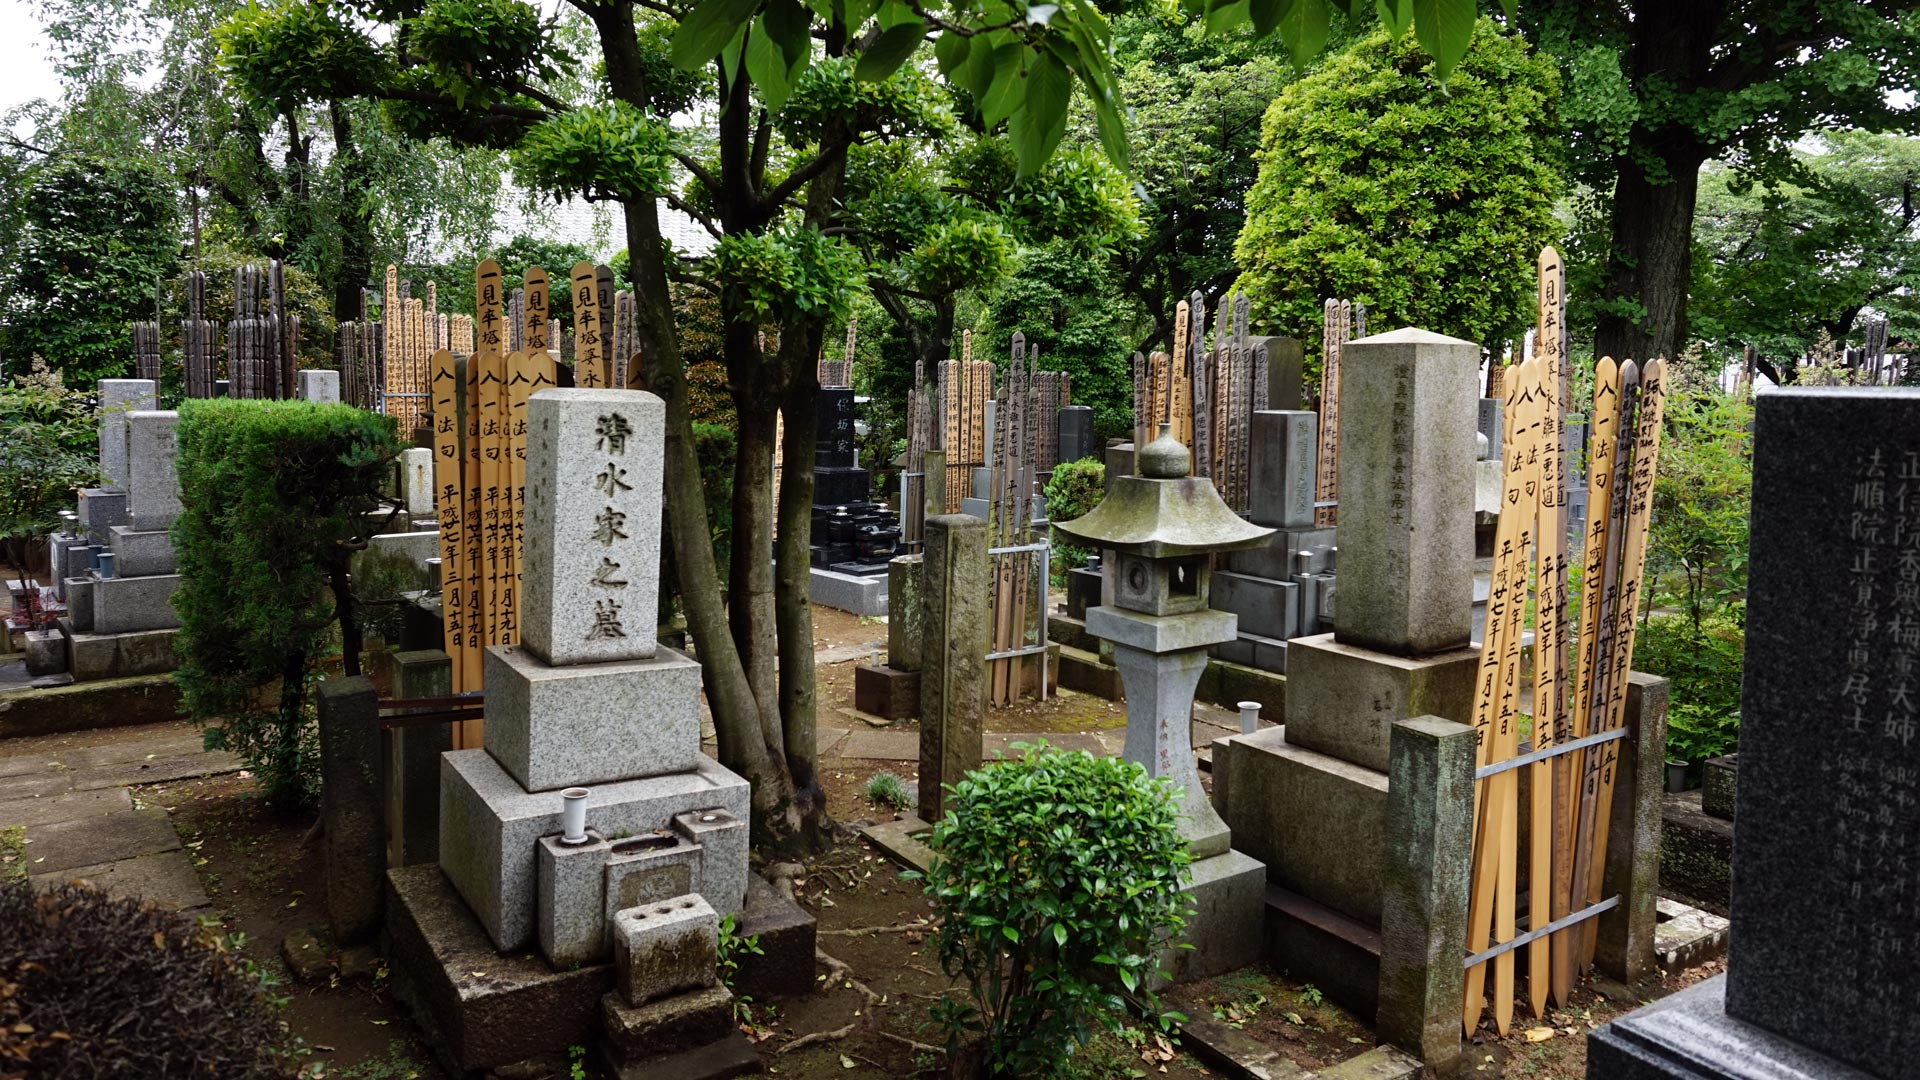 The beautiful cemeteries